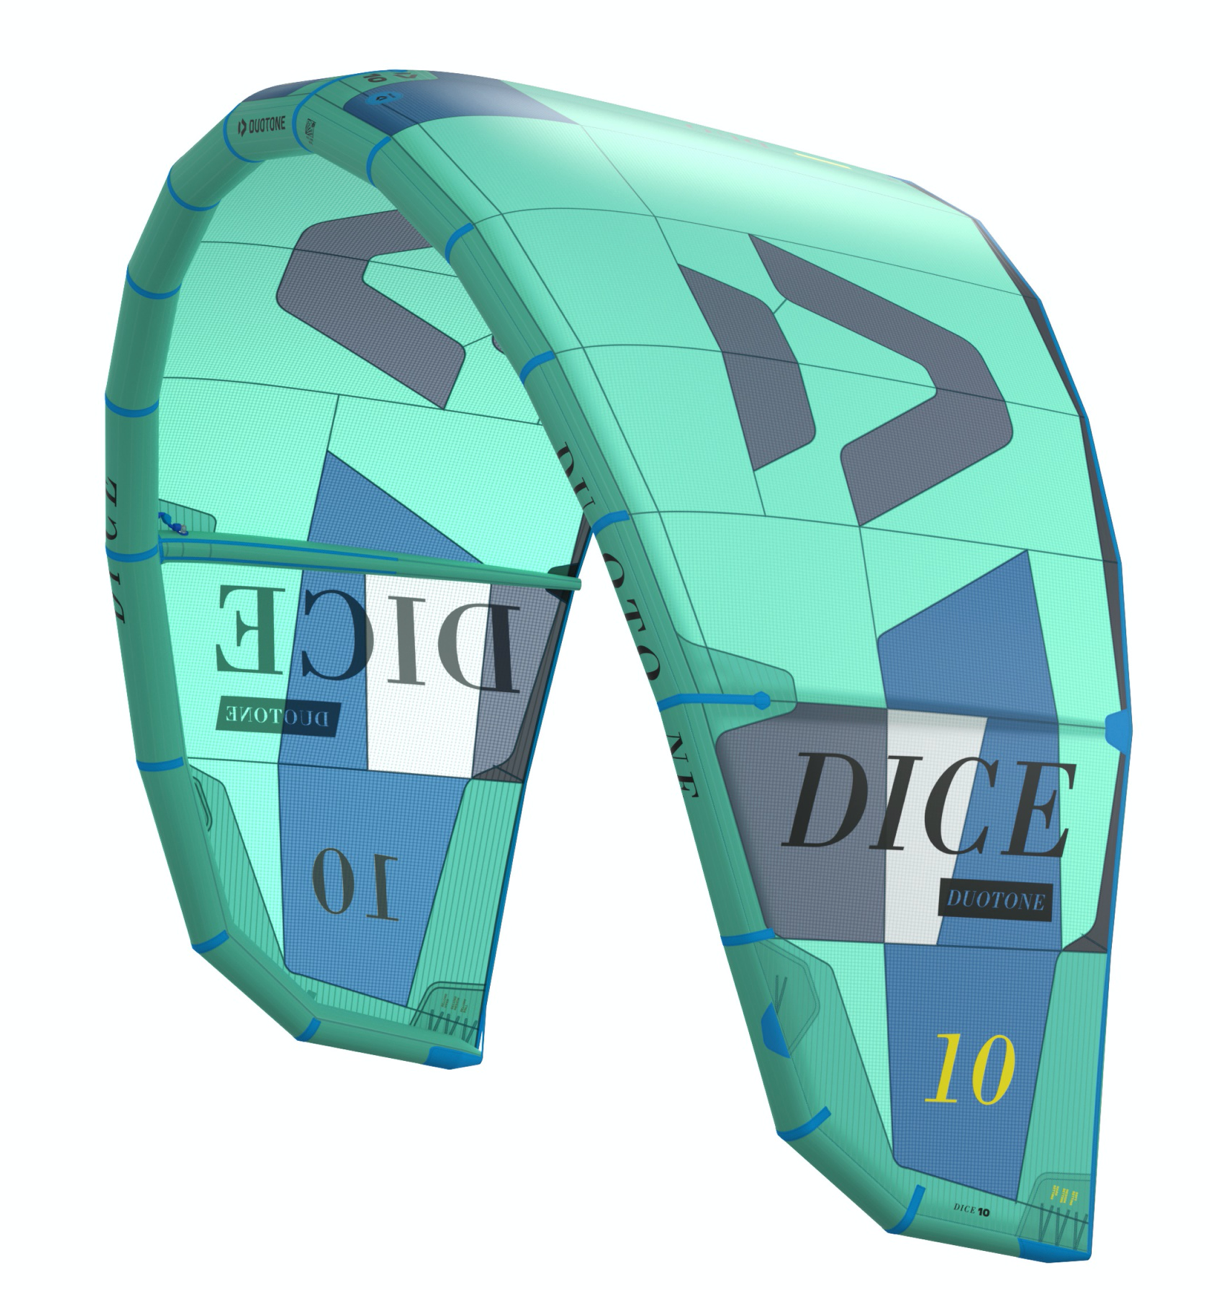 Duotone Dice 2021 kite in Green size 10 mt, the best freestyle/surf kite in the market.